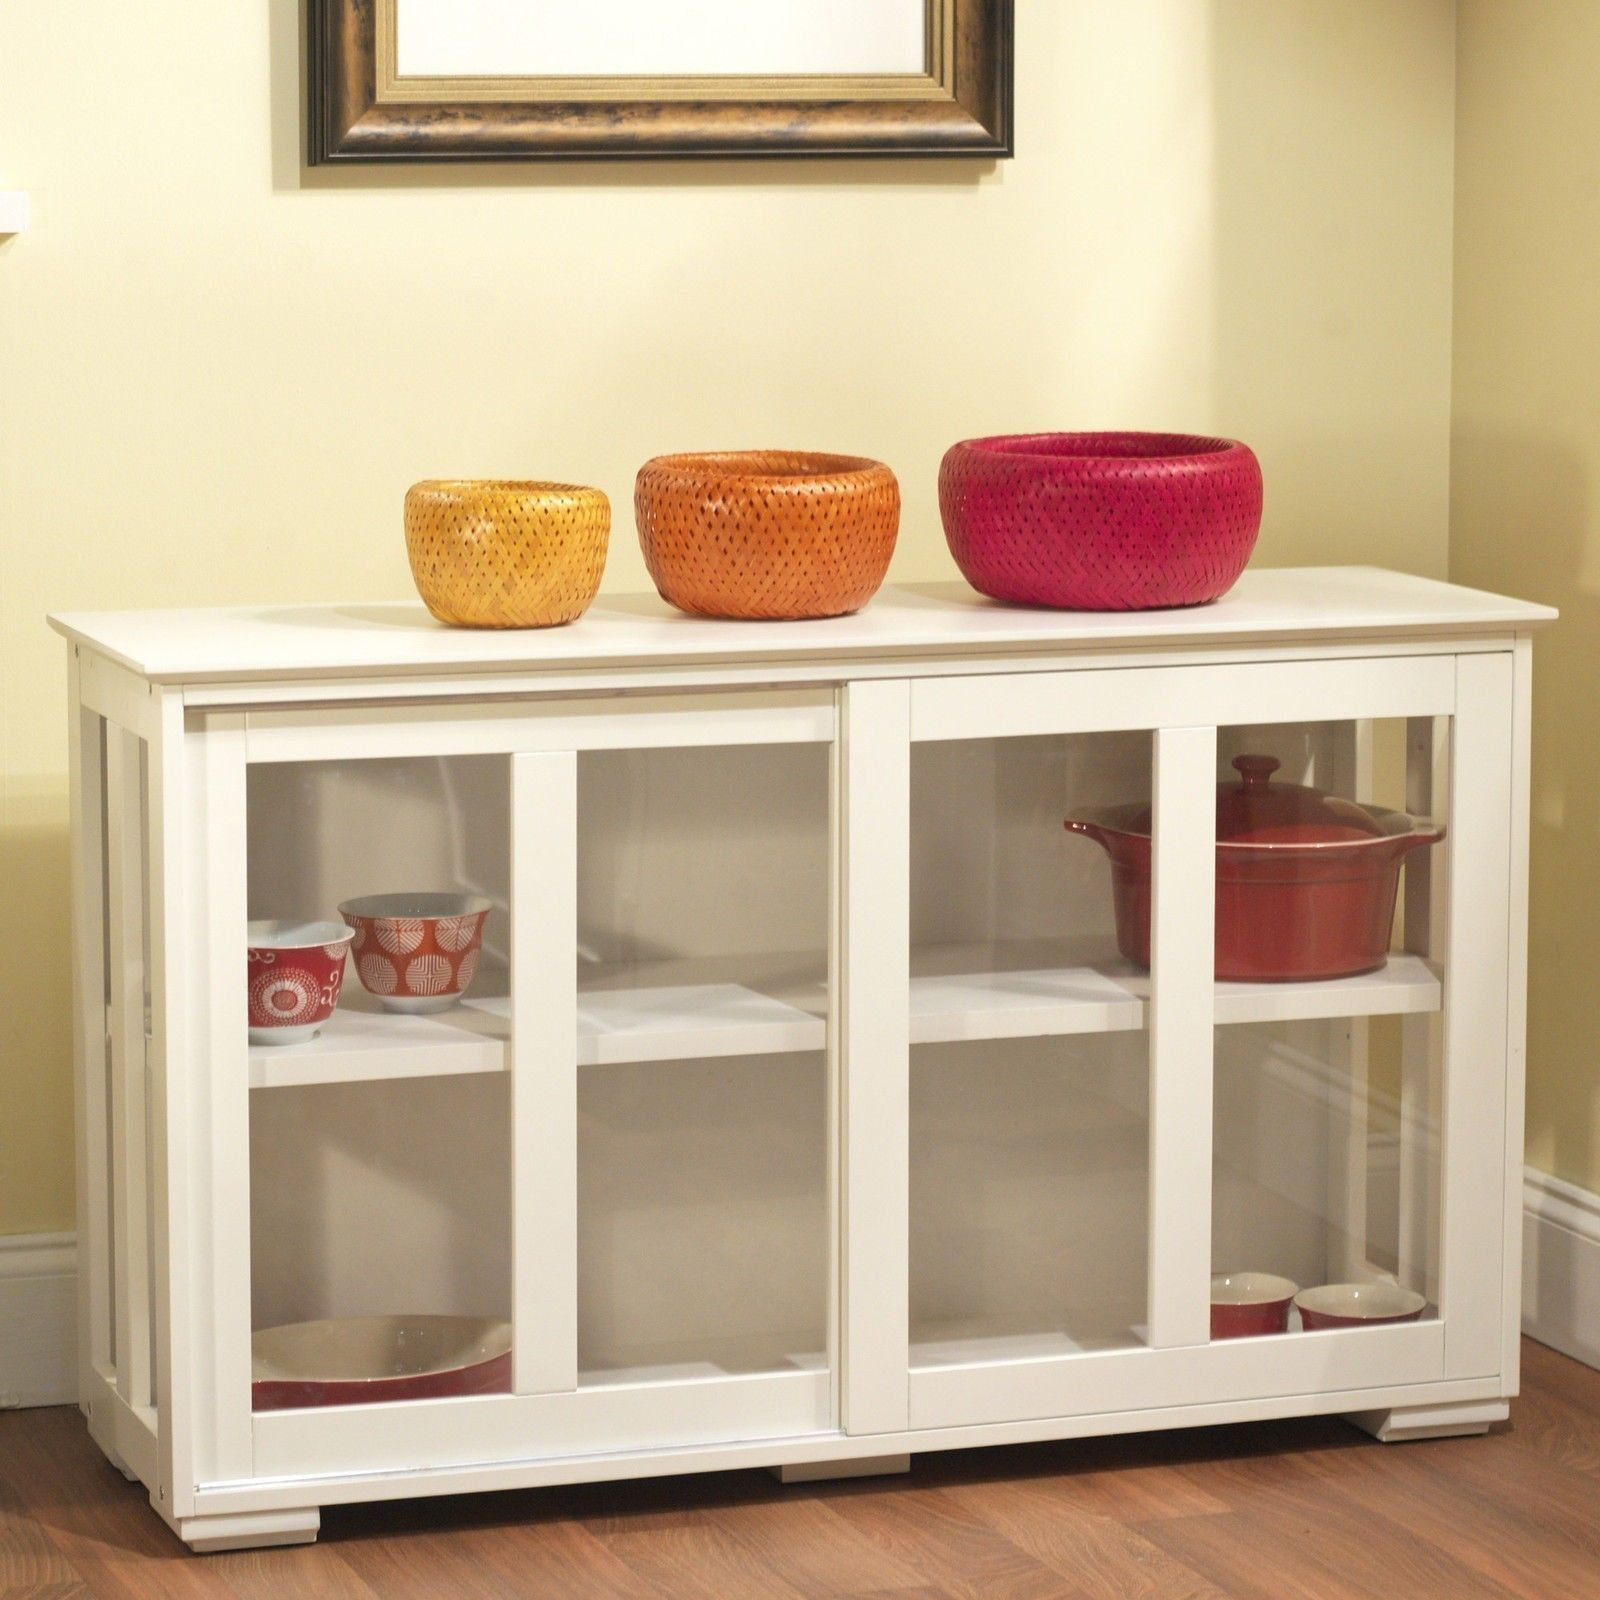 Kitchen Base Cabinets With Sliding Doors